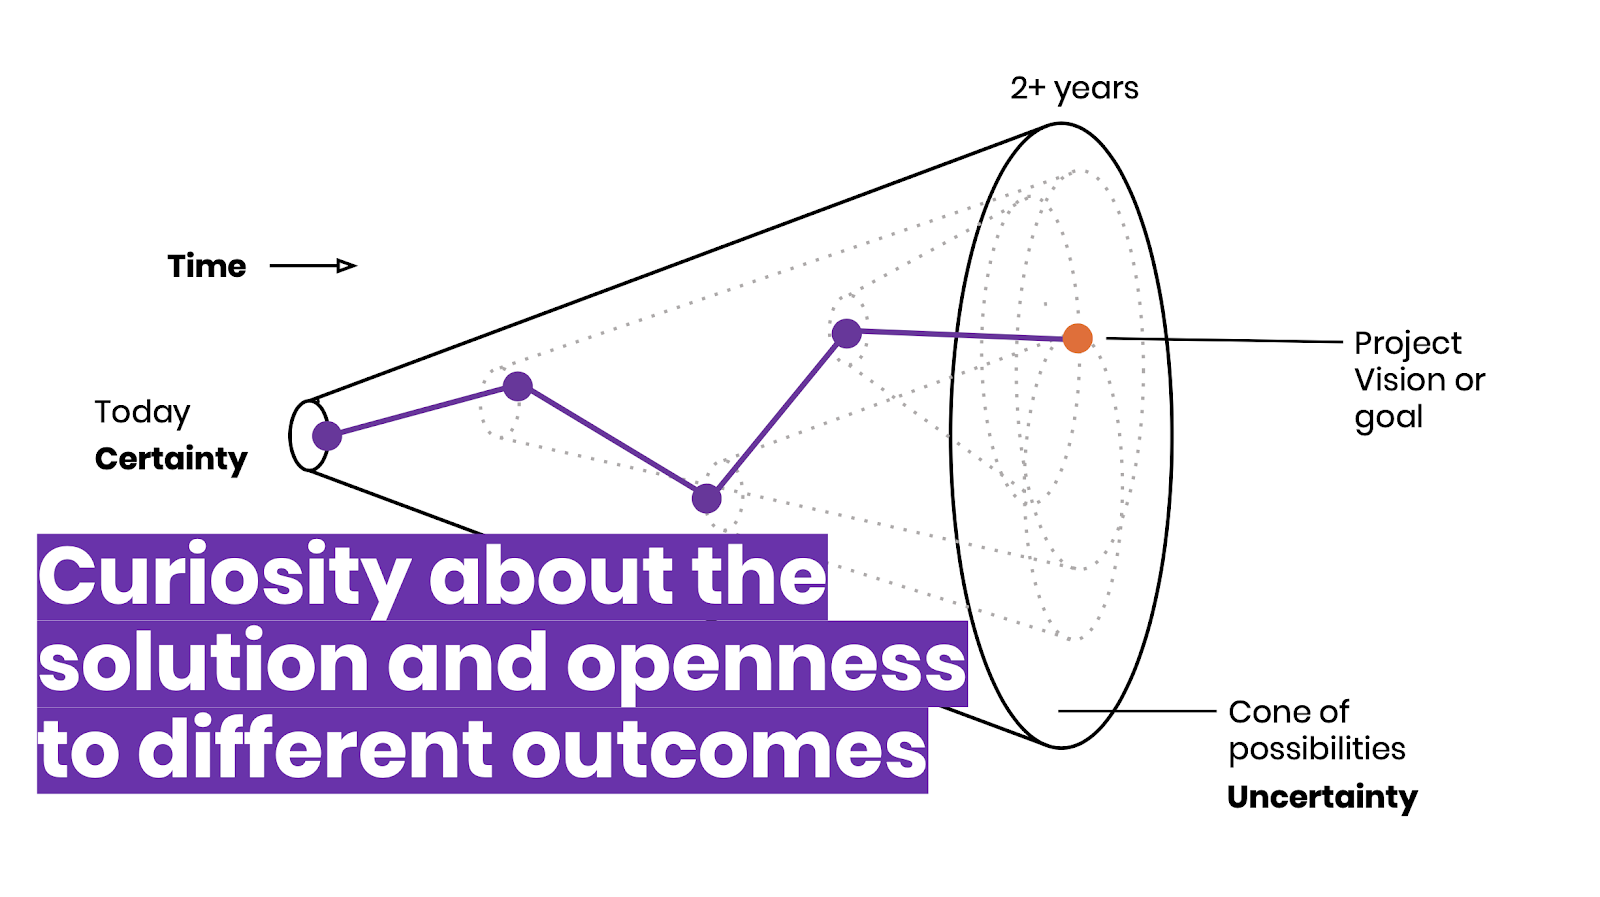 Curiosity about the solution and openness to different outcomes